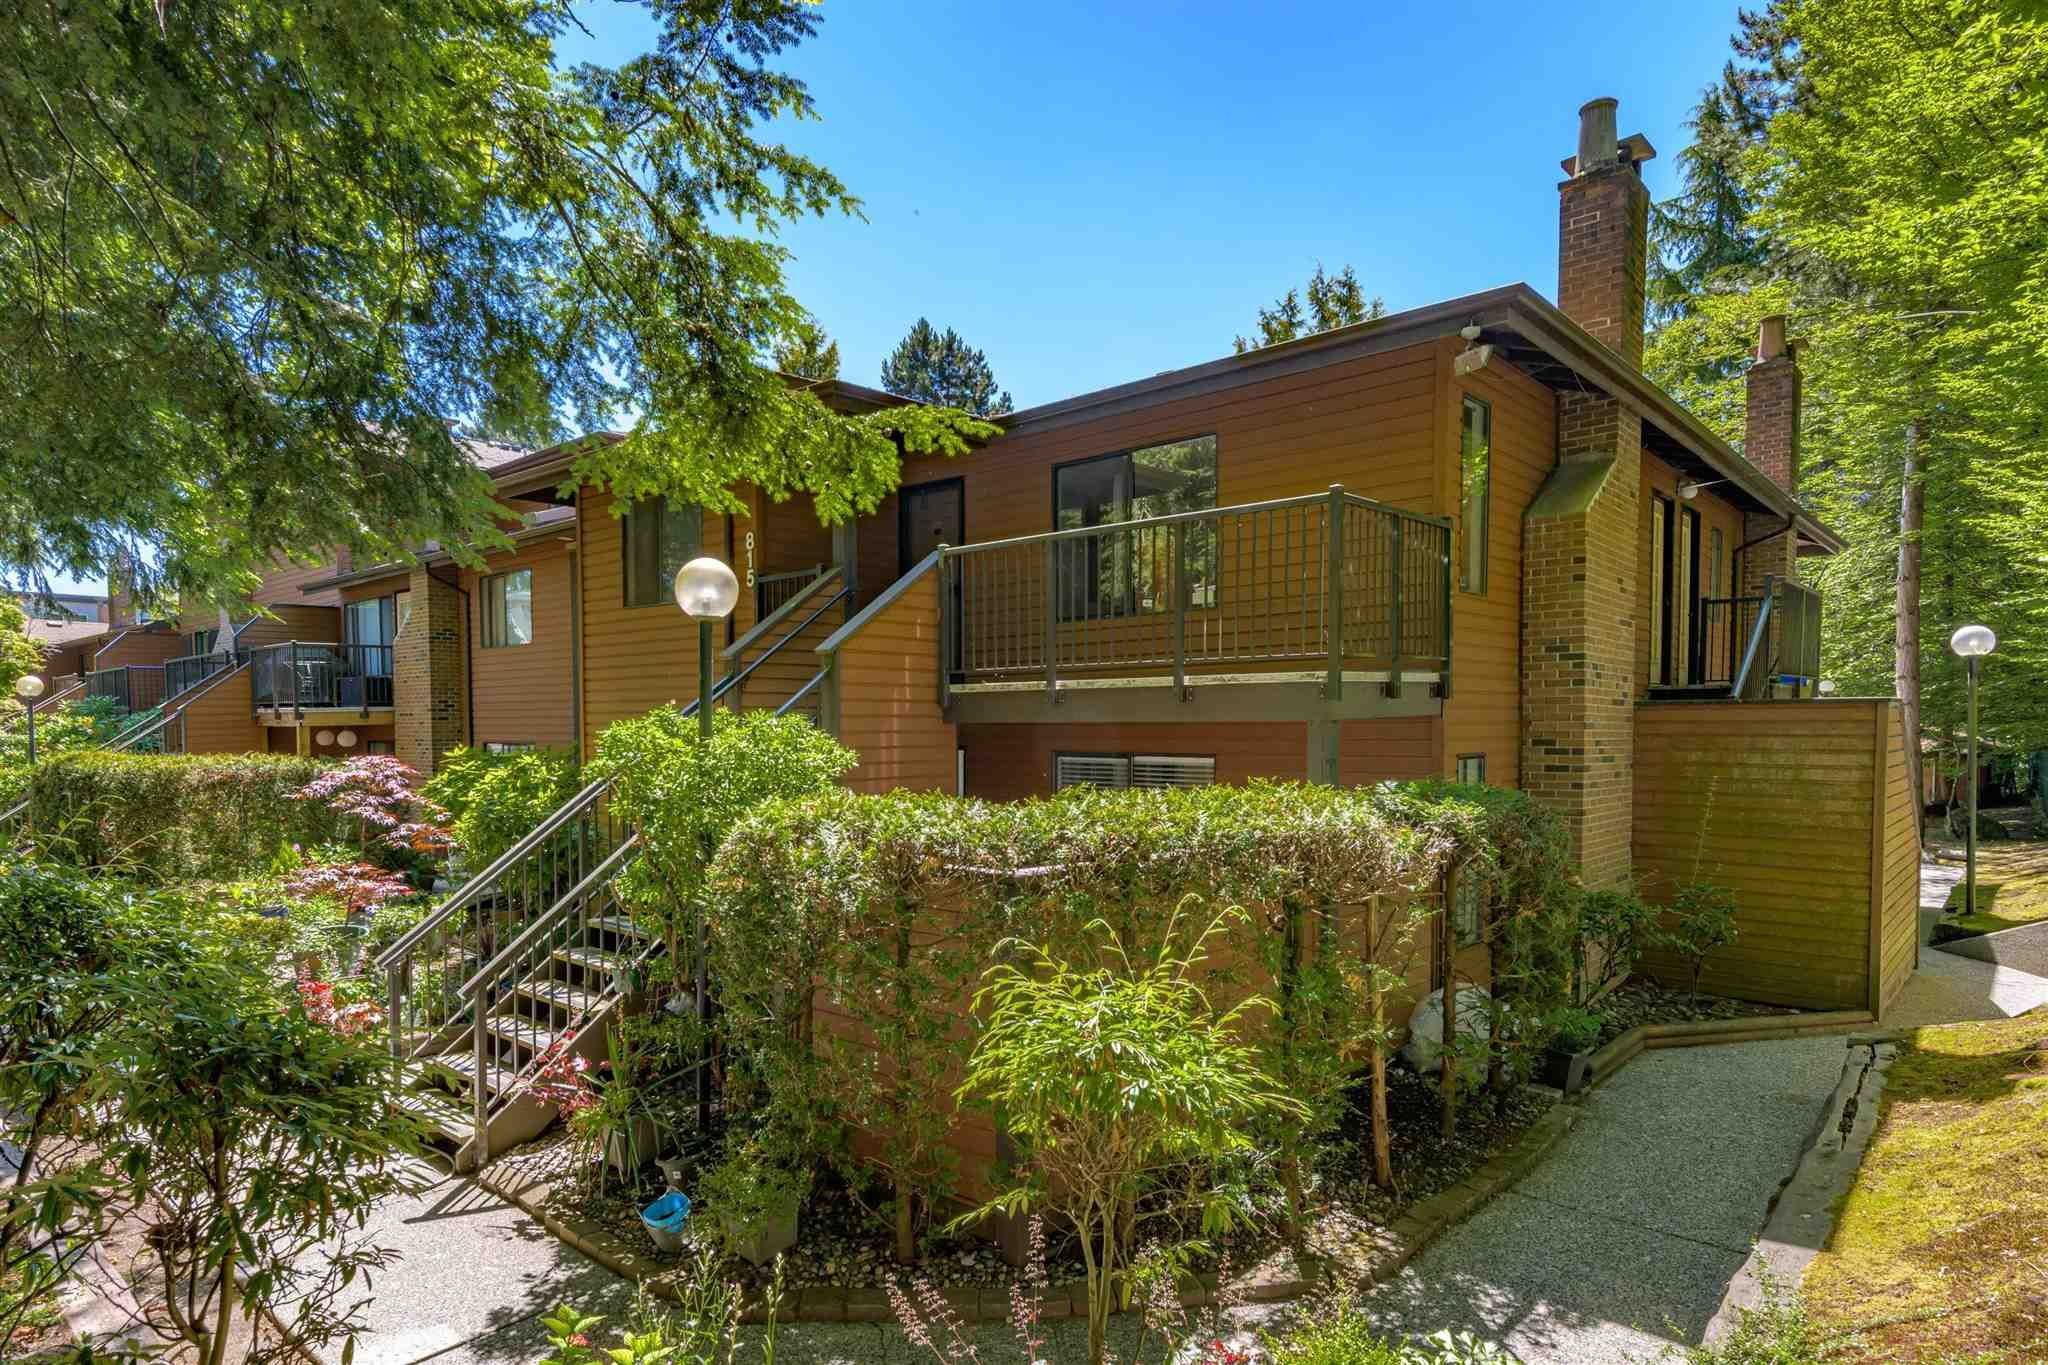 """Main Photo: 815 10620 150 Street in Surrey: Guildford Townhouse for sale in """"LINCOLN GATE"""" (North Surrey)  : MLS®# R2596025"""